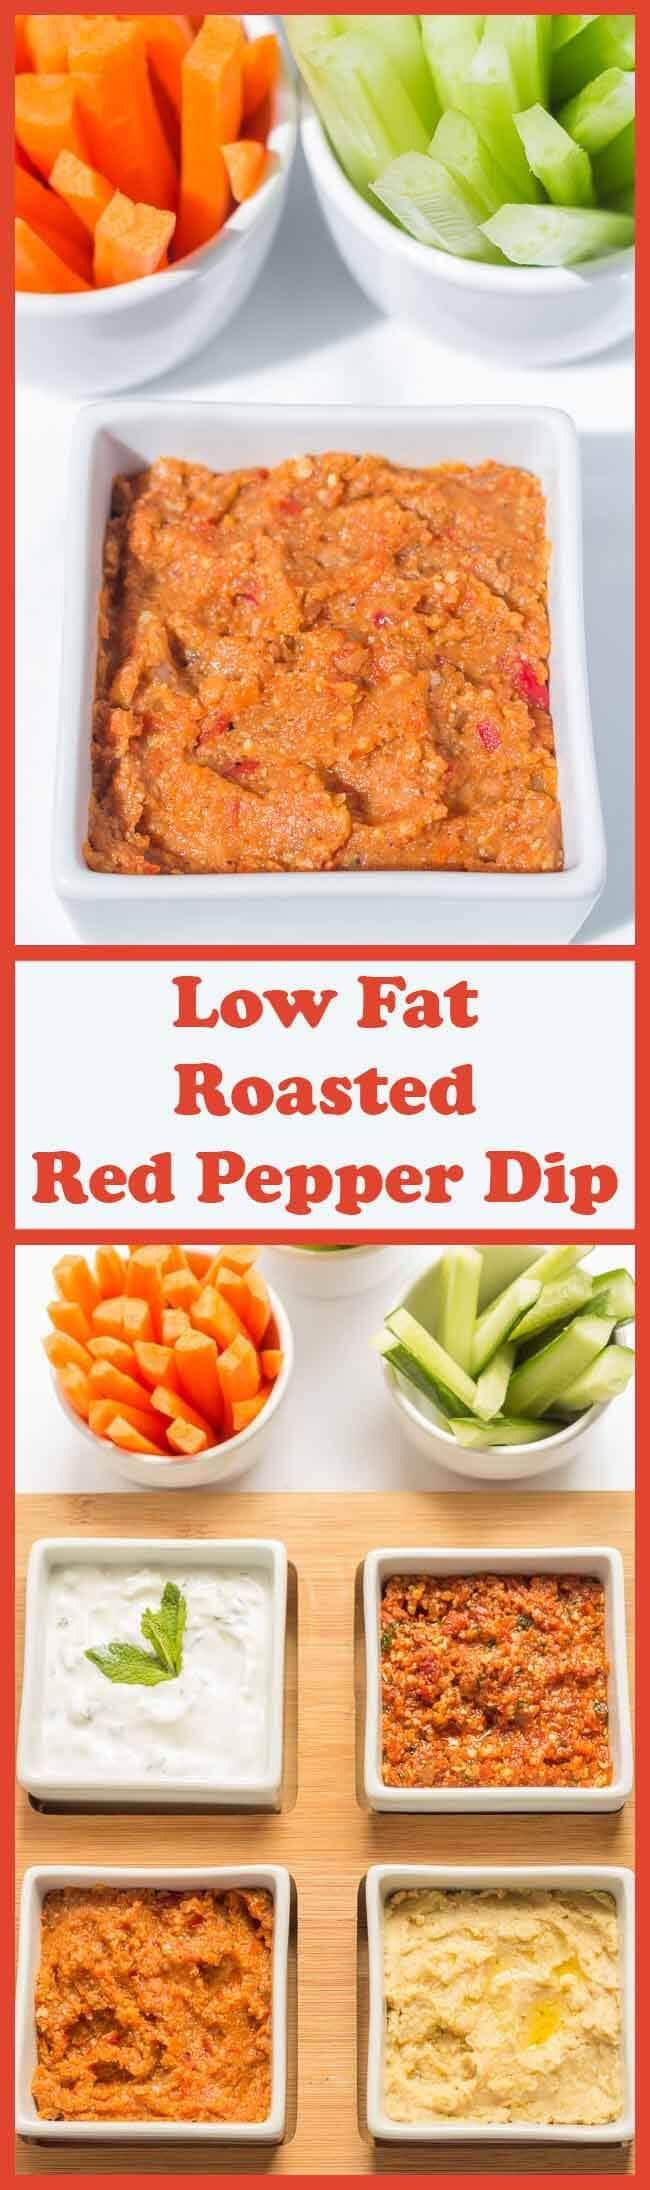 This delicious low fat roasted red pepper dip is made from a unique combination of healthy veggies which combine and marinate together to produce a rich and hearty taste. Your dinner party friends will be in awe at this flavoursome dip!